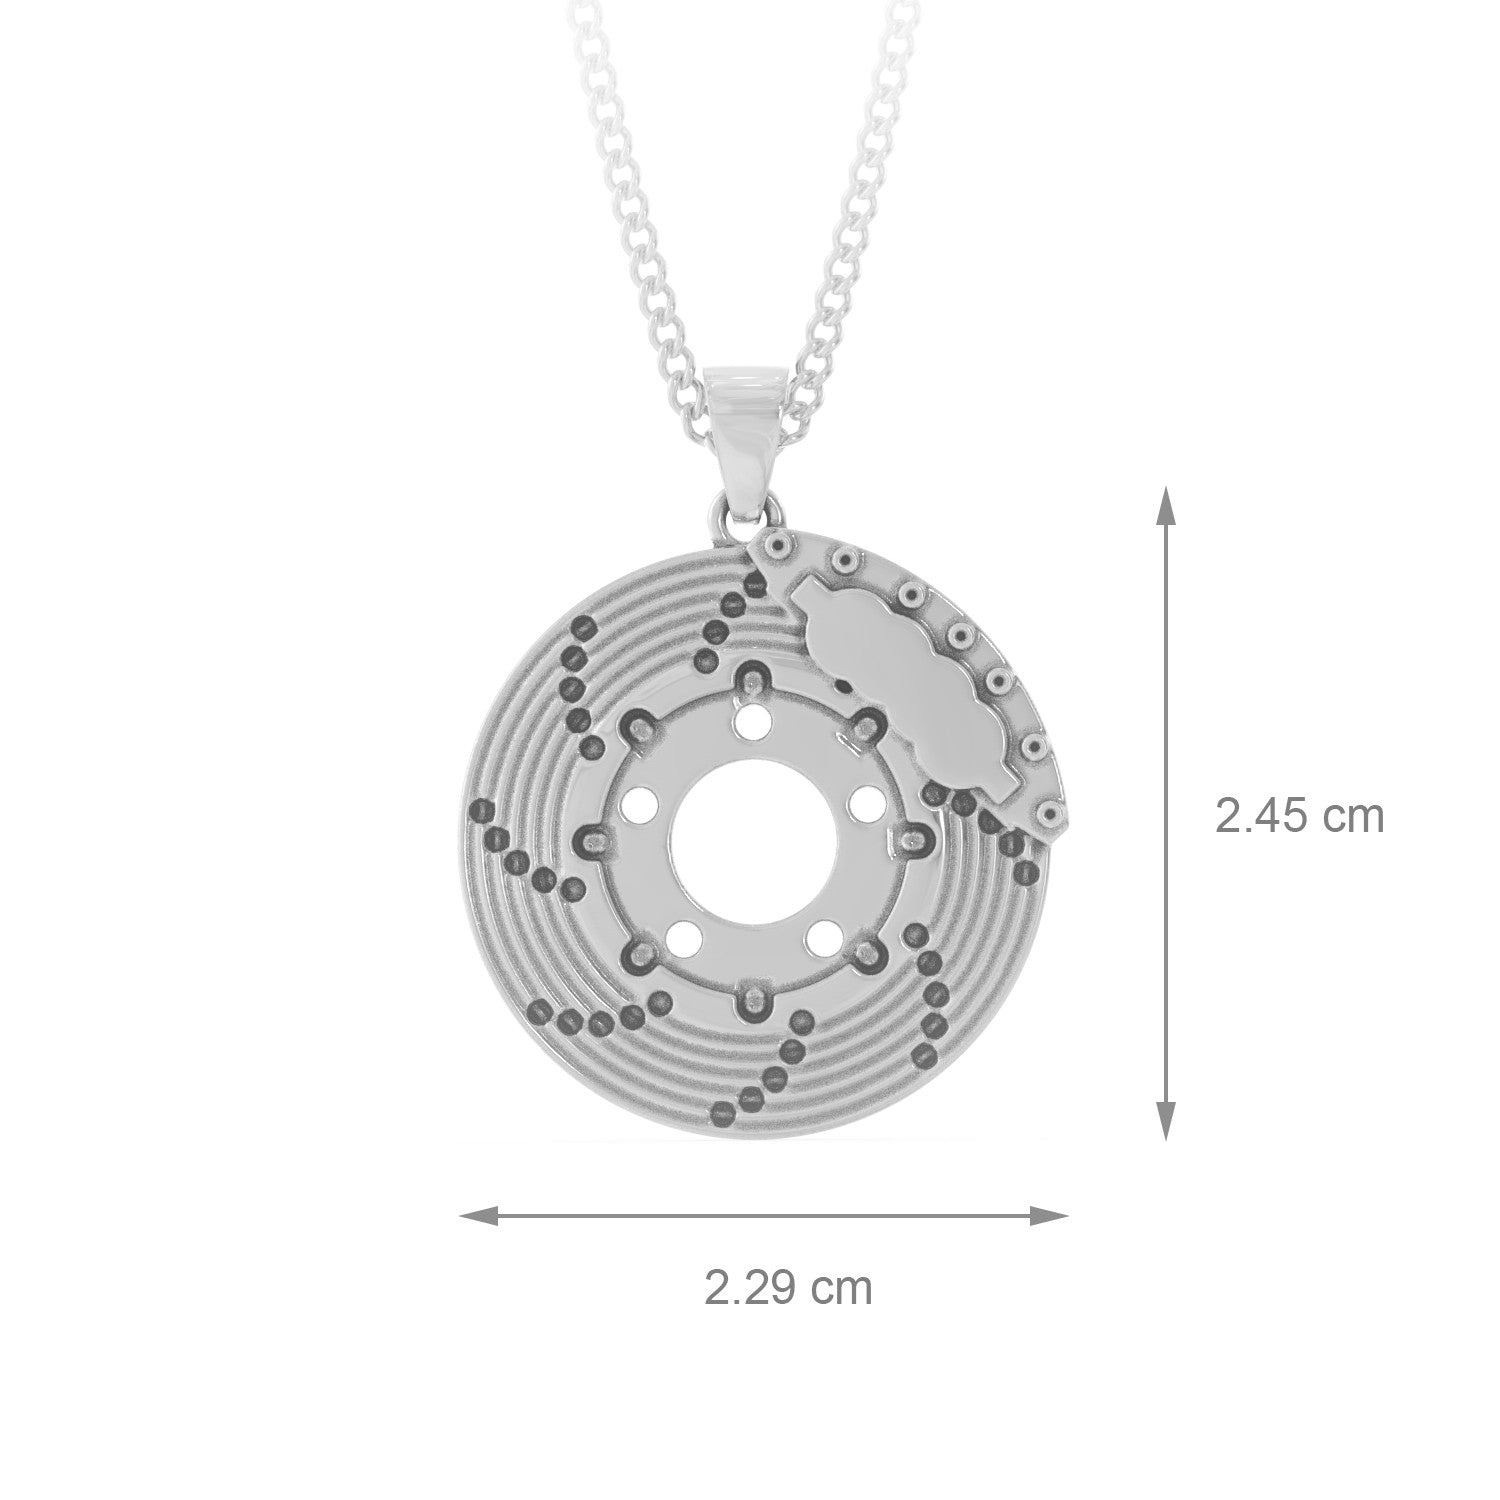 Disc Brake Pendant - STRICTLY LIMITED EDITION